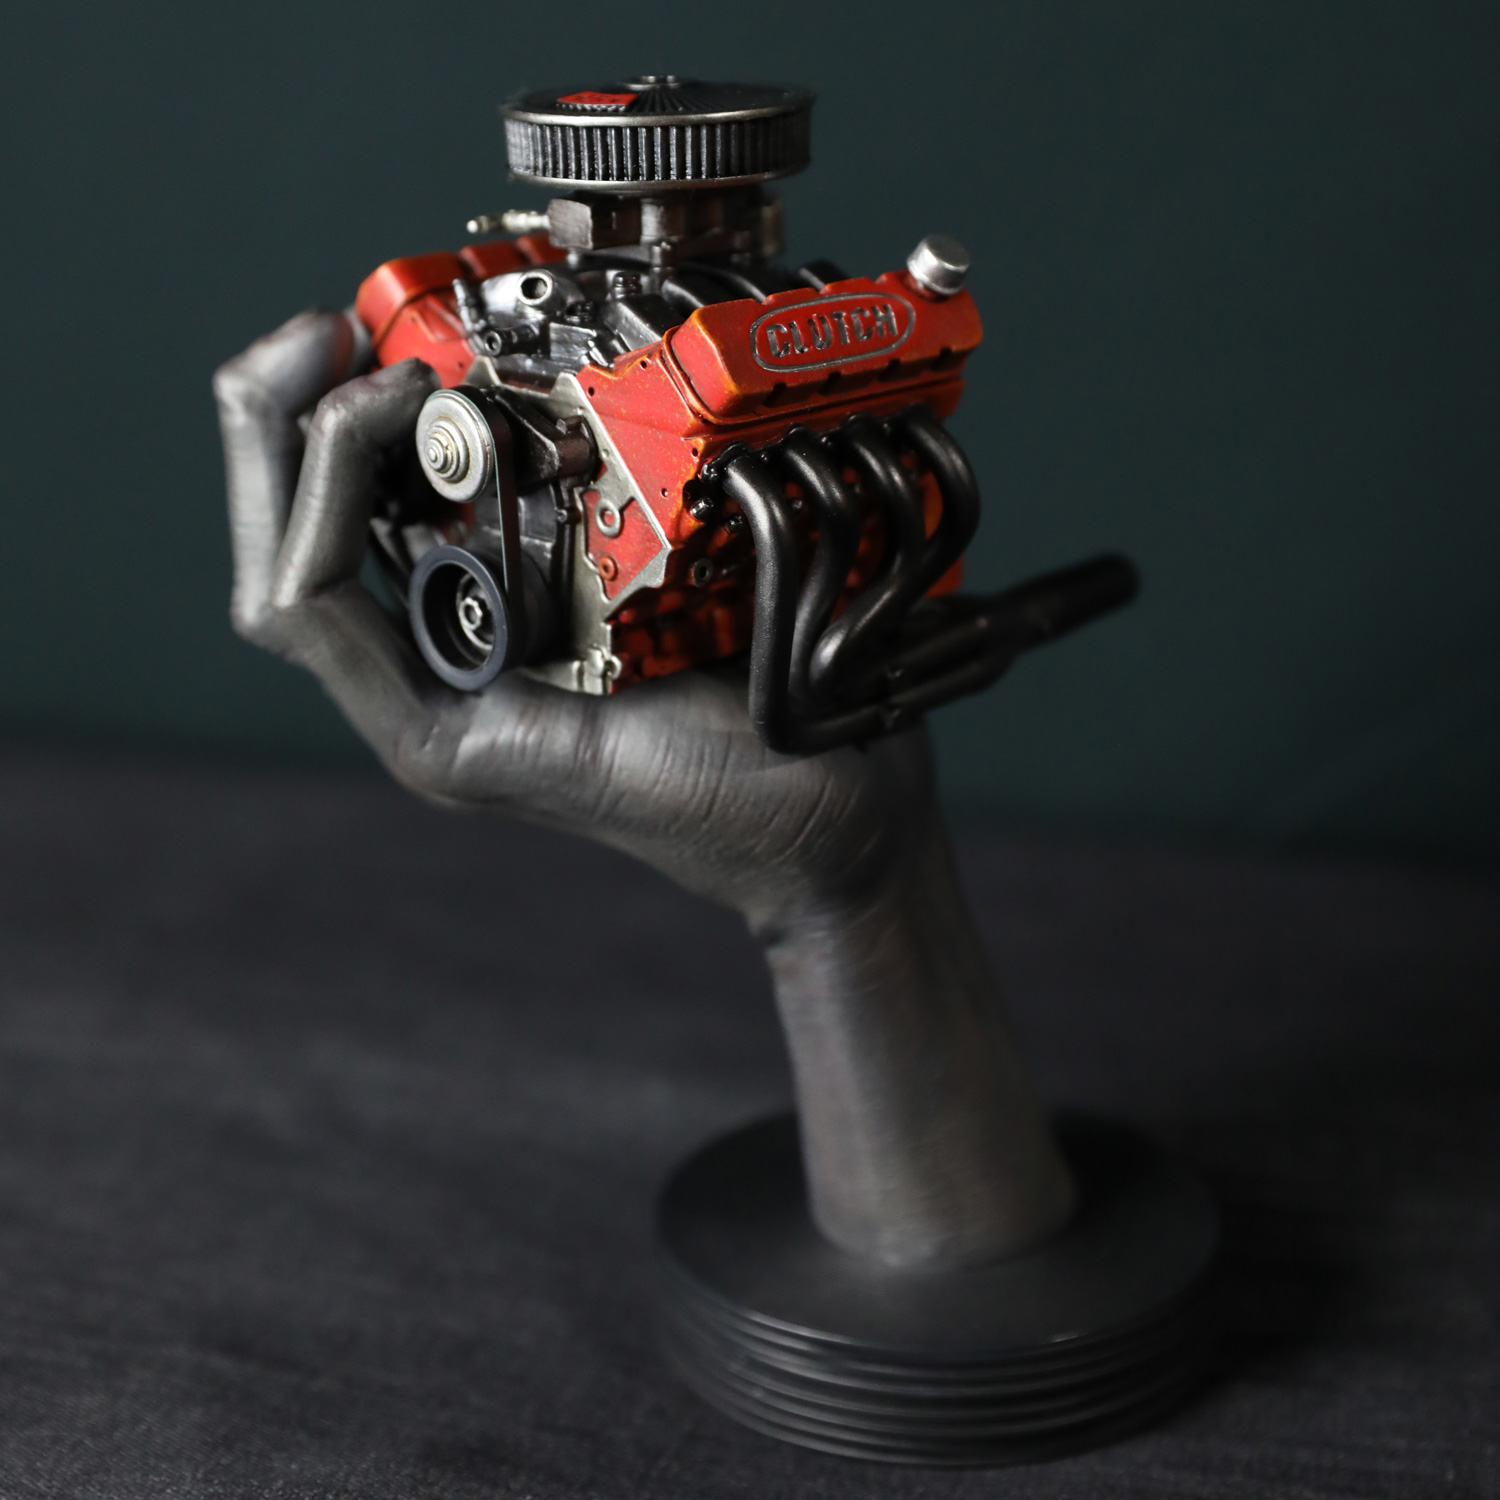 Clutch 454 Sculpture